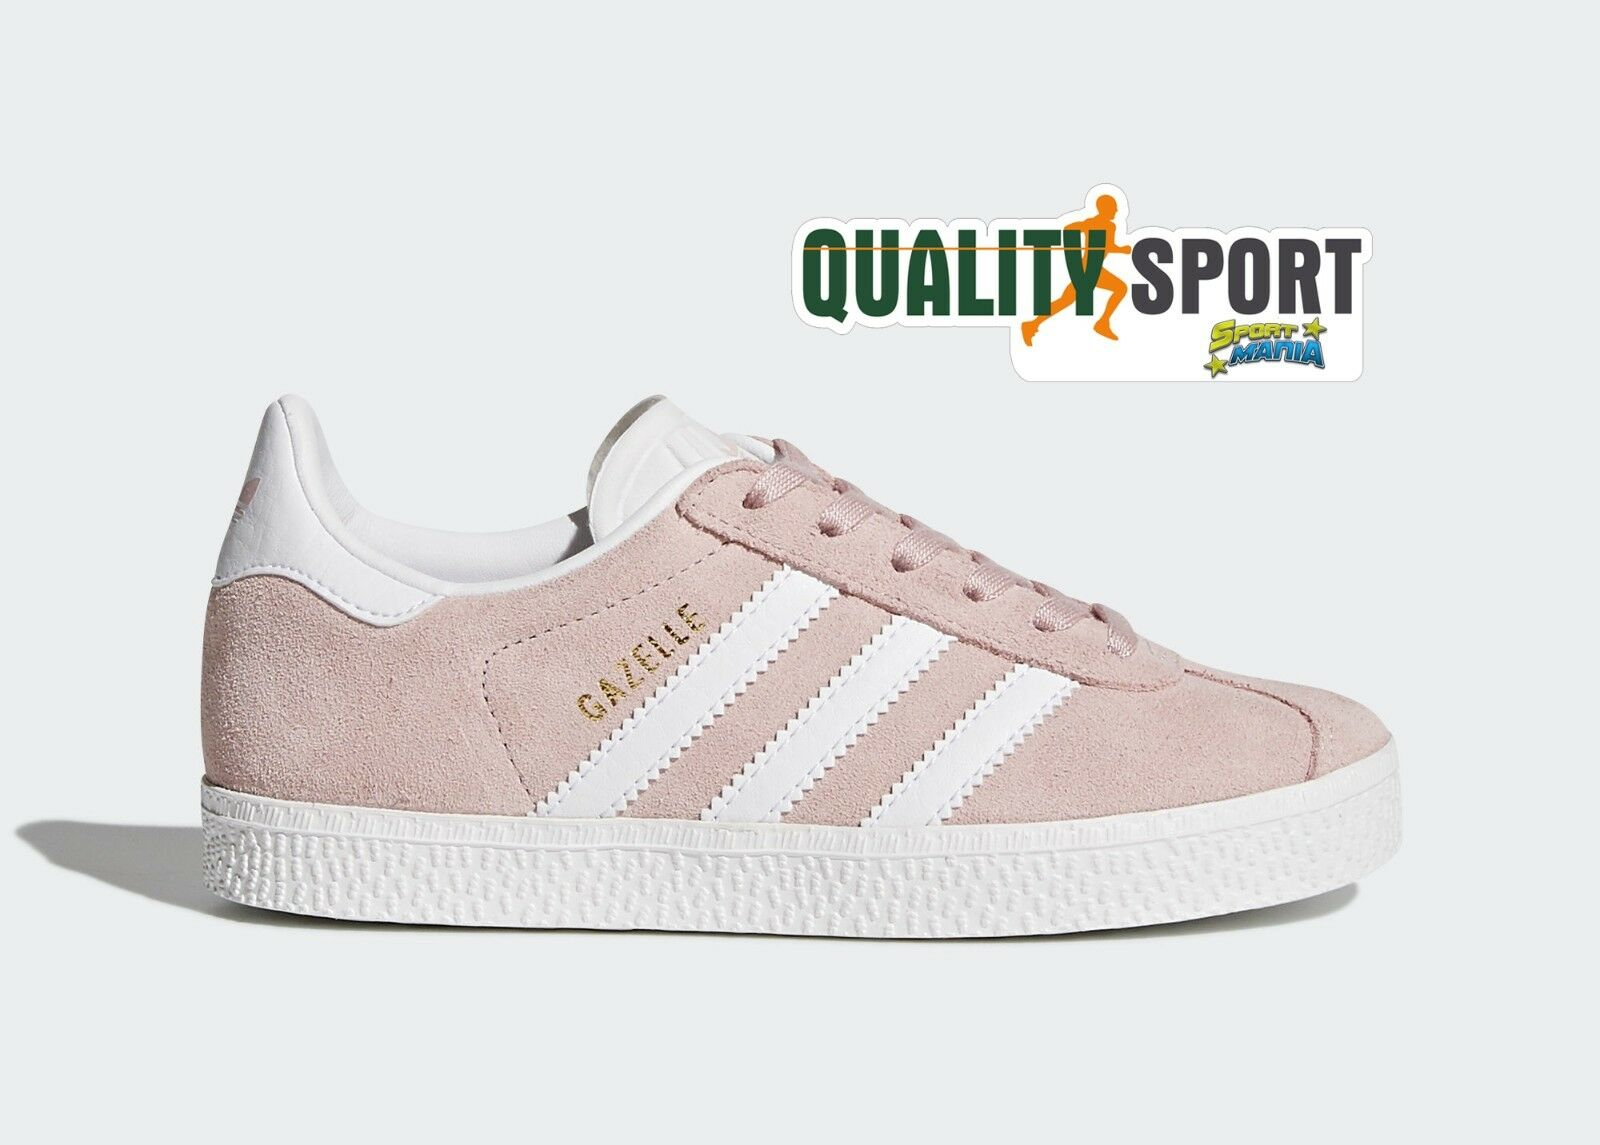 Adidas Gazelle Rosa Scarpe Shoes Bambina Sportive Sneakers BY9548 2018 1 di 5Solo 2 disponibili ...